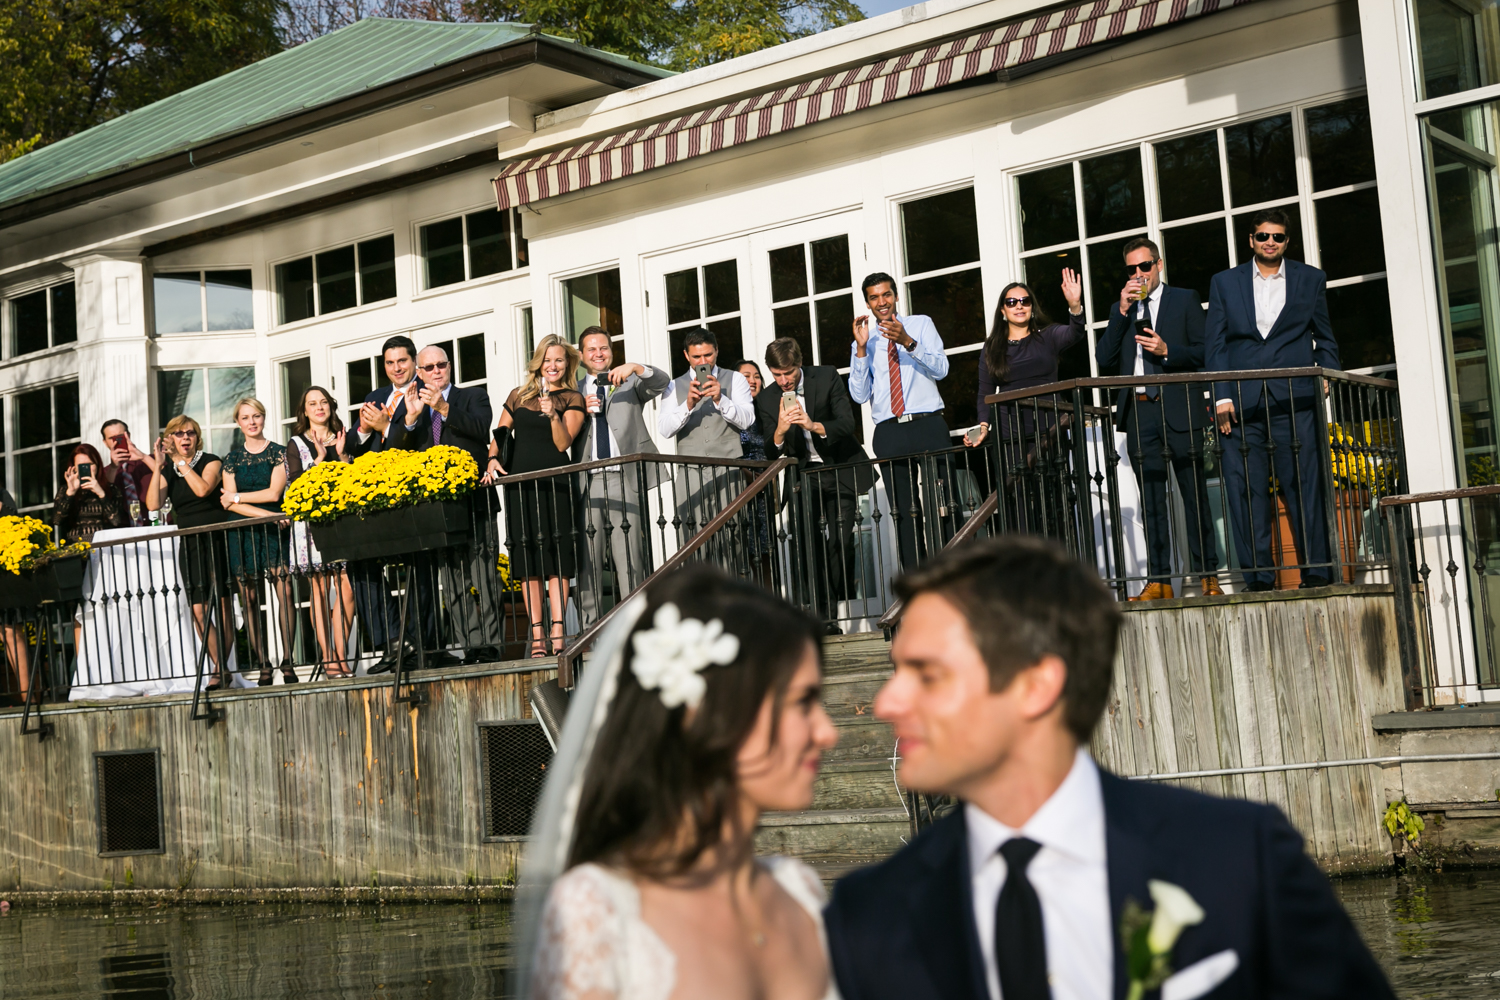 Bride and groom in foreground in boat with guests standing along Loeb Boathouse railing in background